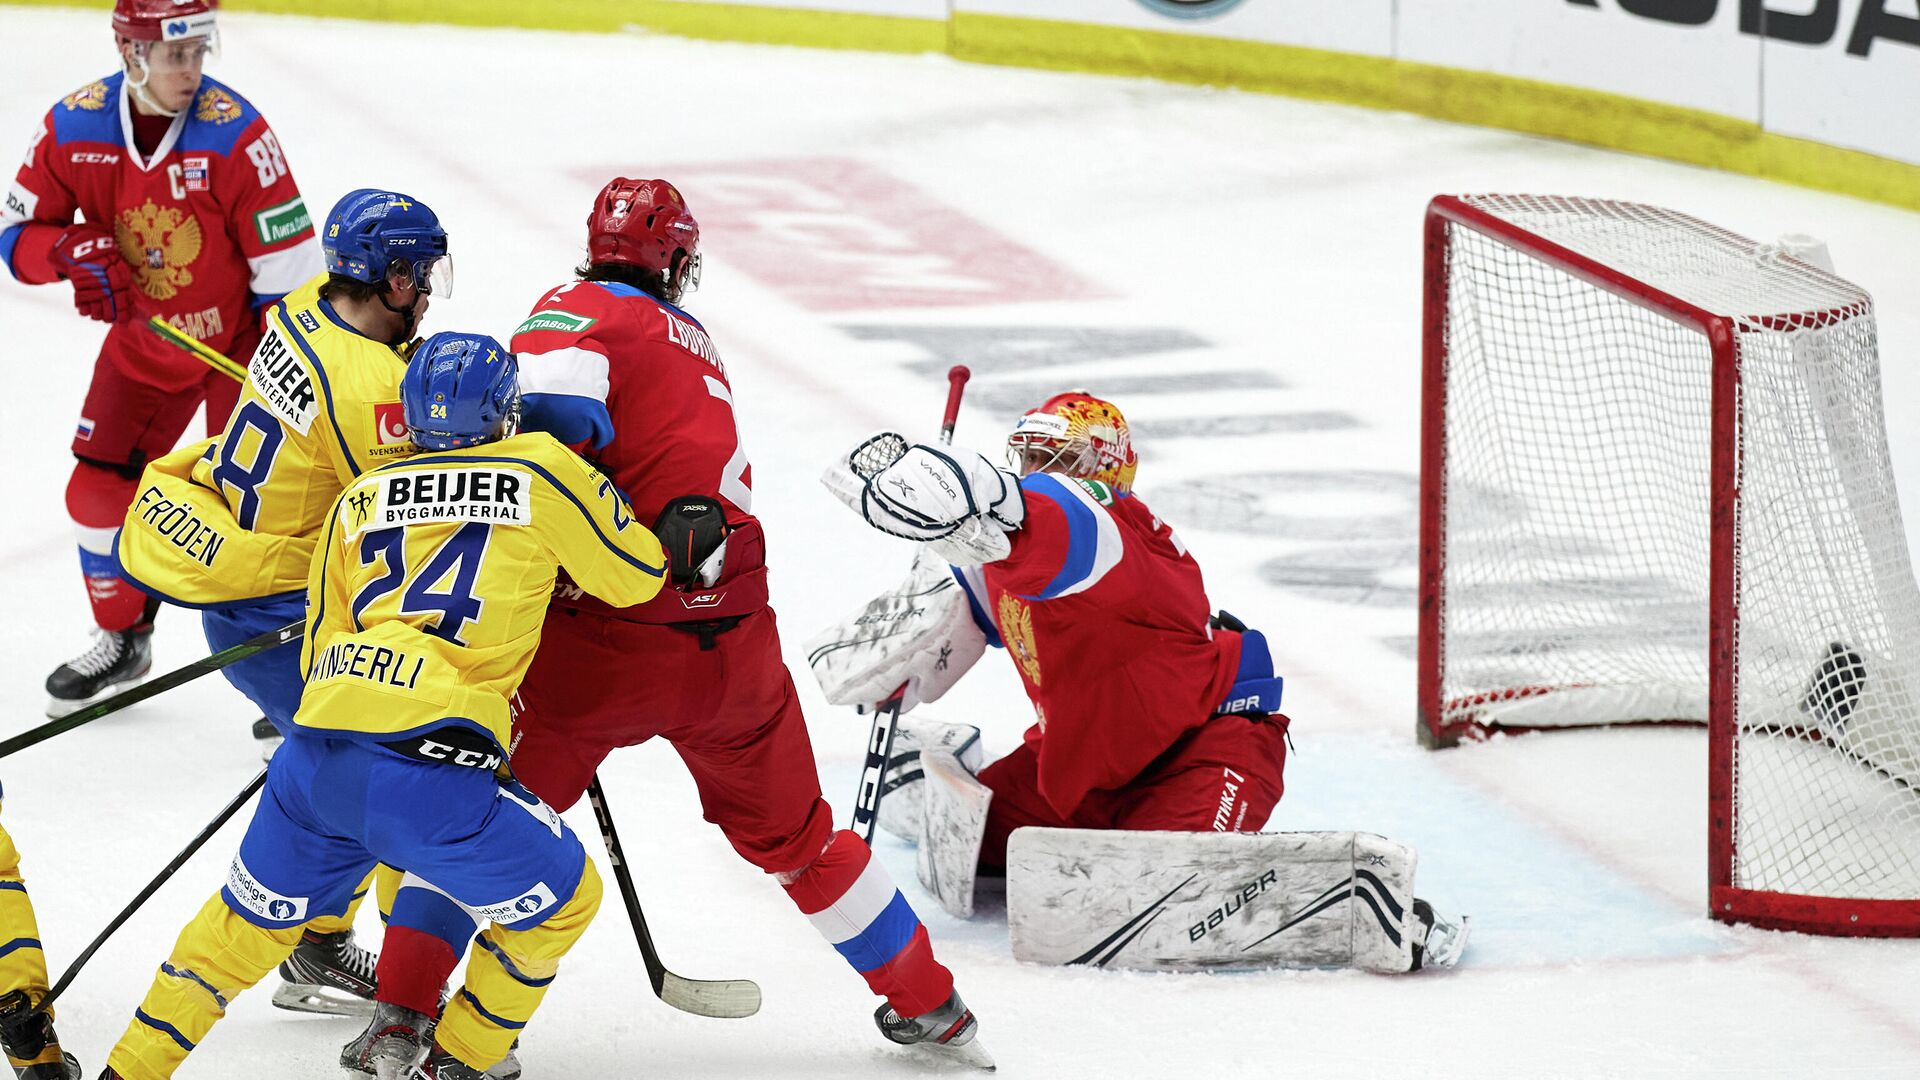 Russia's goalkeeper Alexander Samonov (R) makes a save during the Beijer Hockey Games (Euro Hockey Tour) ice hockey match between Sweden and Russia in Malmo on February 13, 2021. (Photo by Anders Bjuro / TT NEWS AGENCY / AFP) / Sweden OUT - РИА Новости, 1920, 13.02.2021